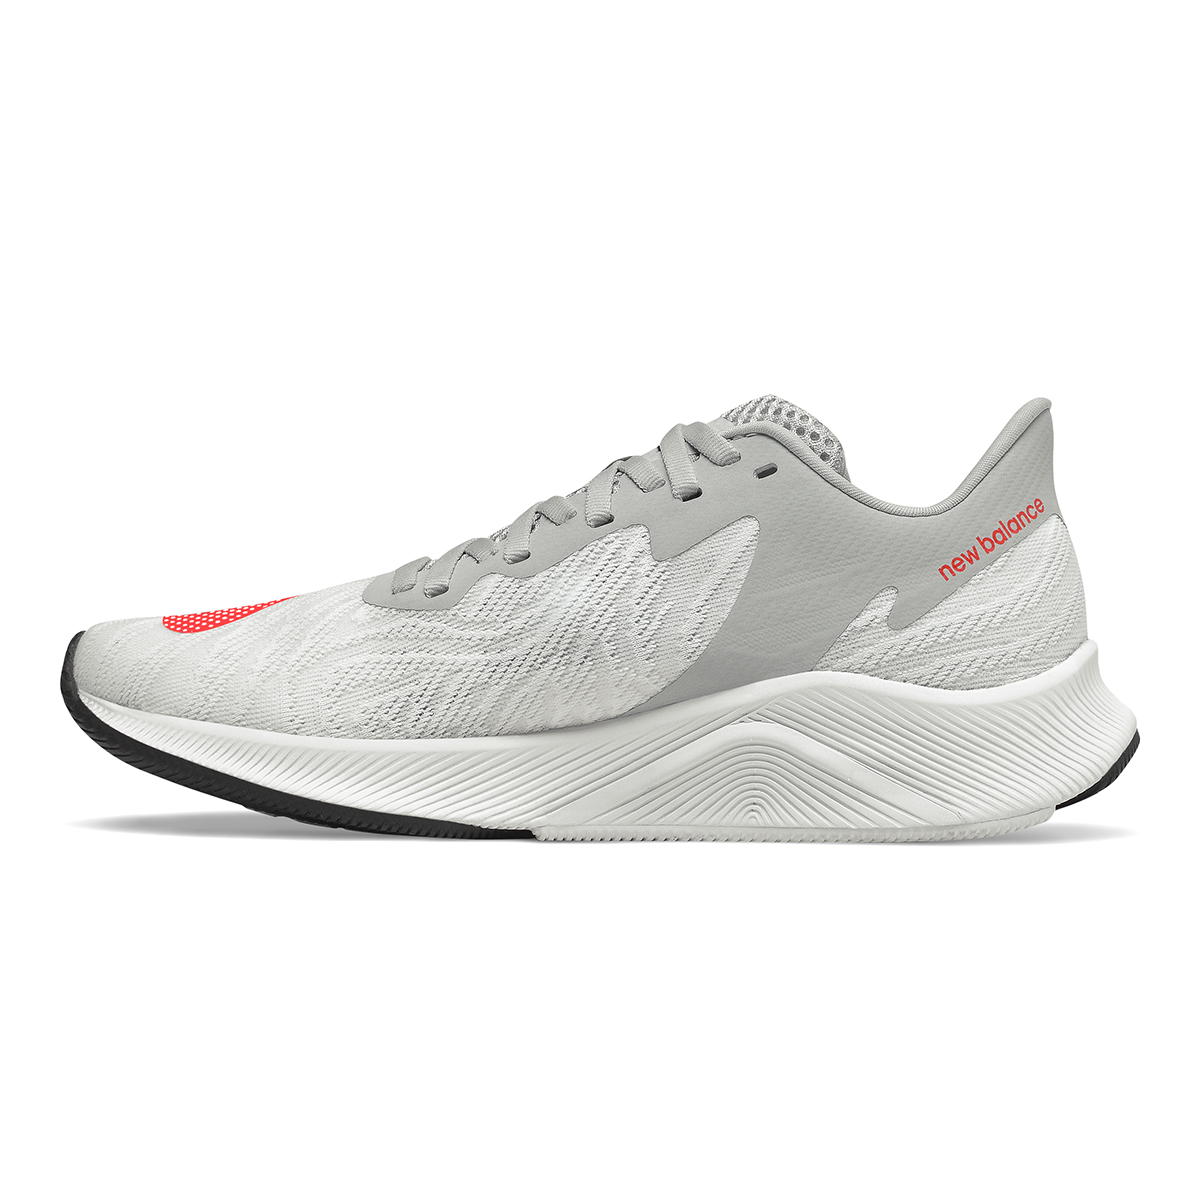 Women's New Balance FuelCell Prism Running Shoe - Color: White - Size: 6 - Width: Regular, White, large, image 2